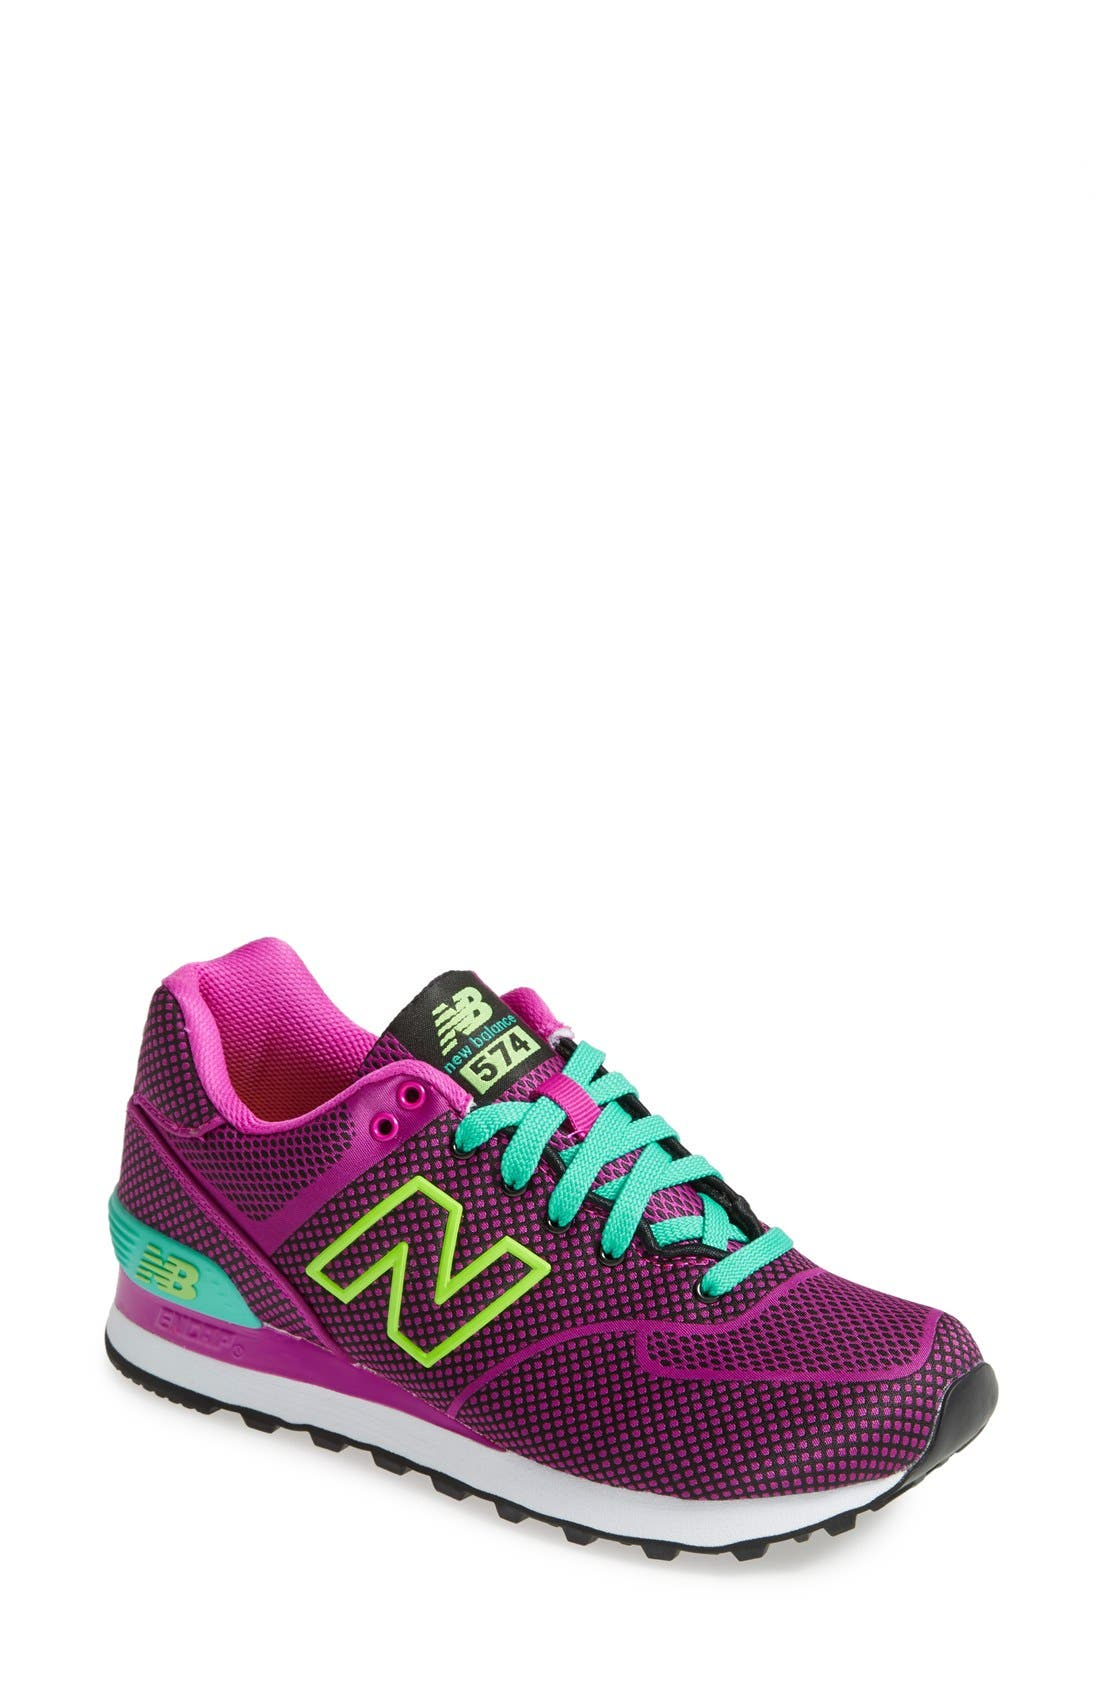 Alternate Image 1 Selected - New Balance '574' Sneaker (Women)